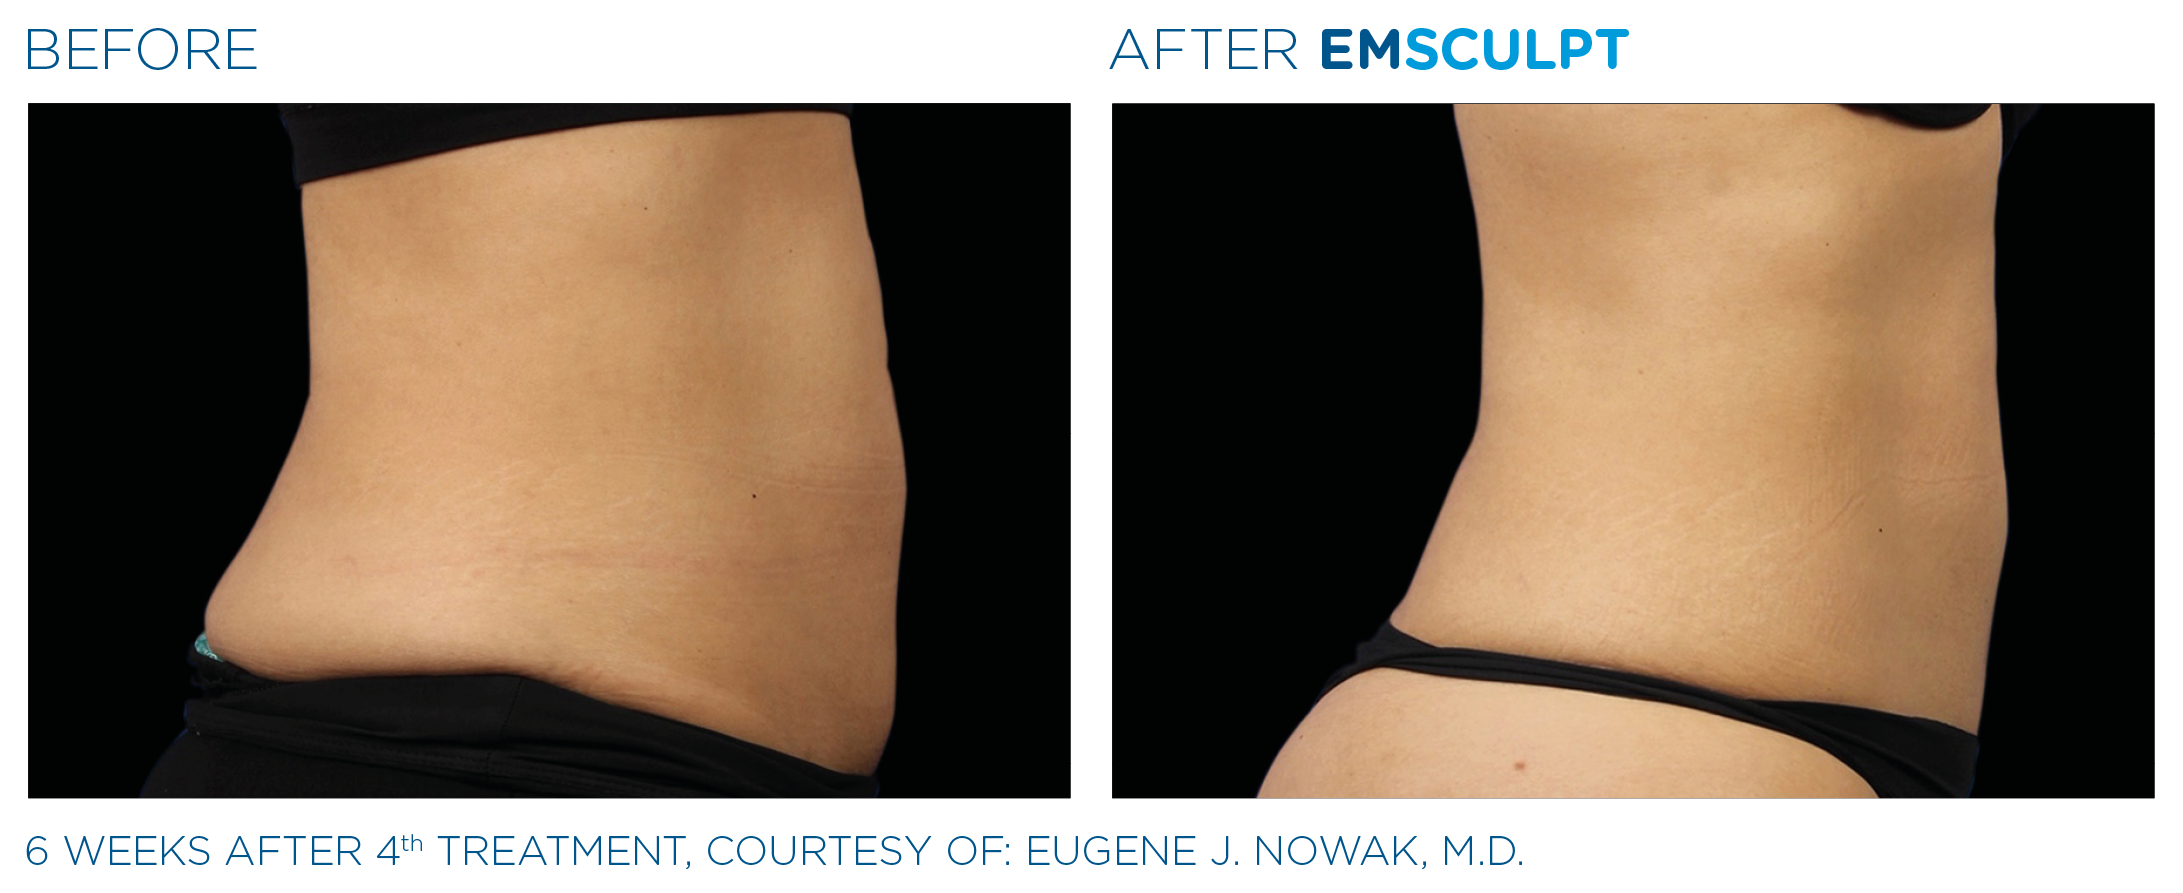 Emsculpt before and after